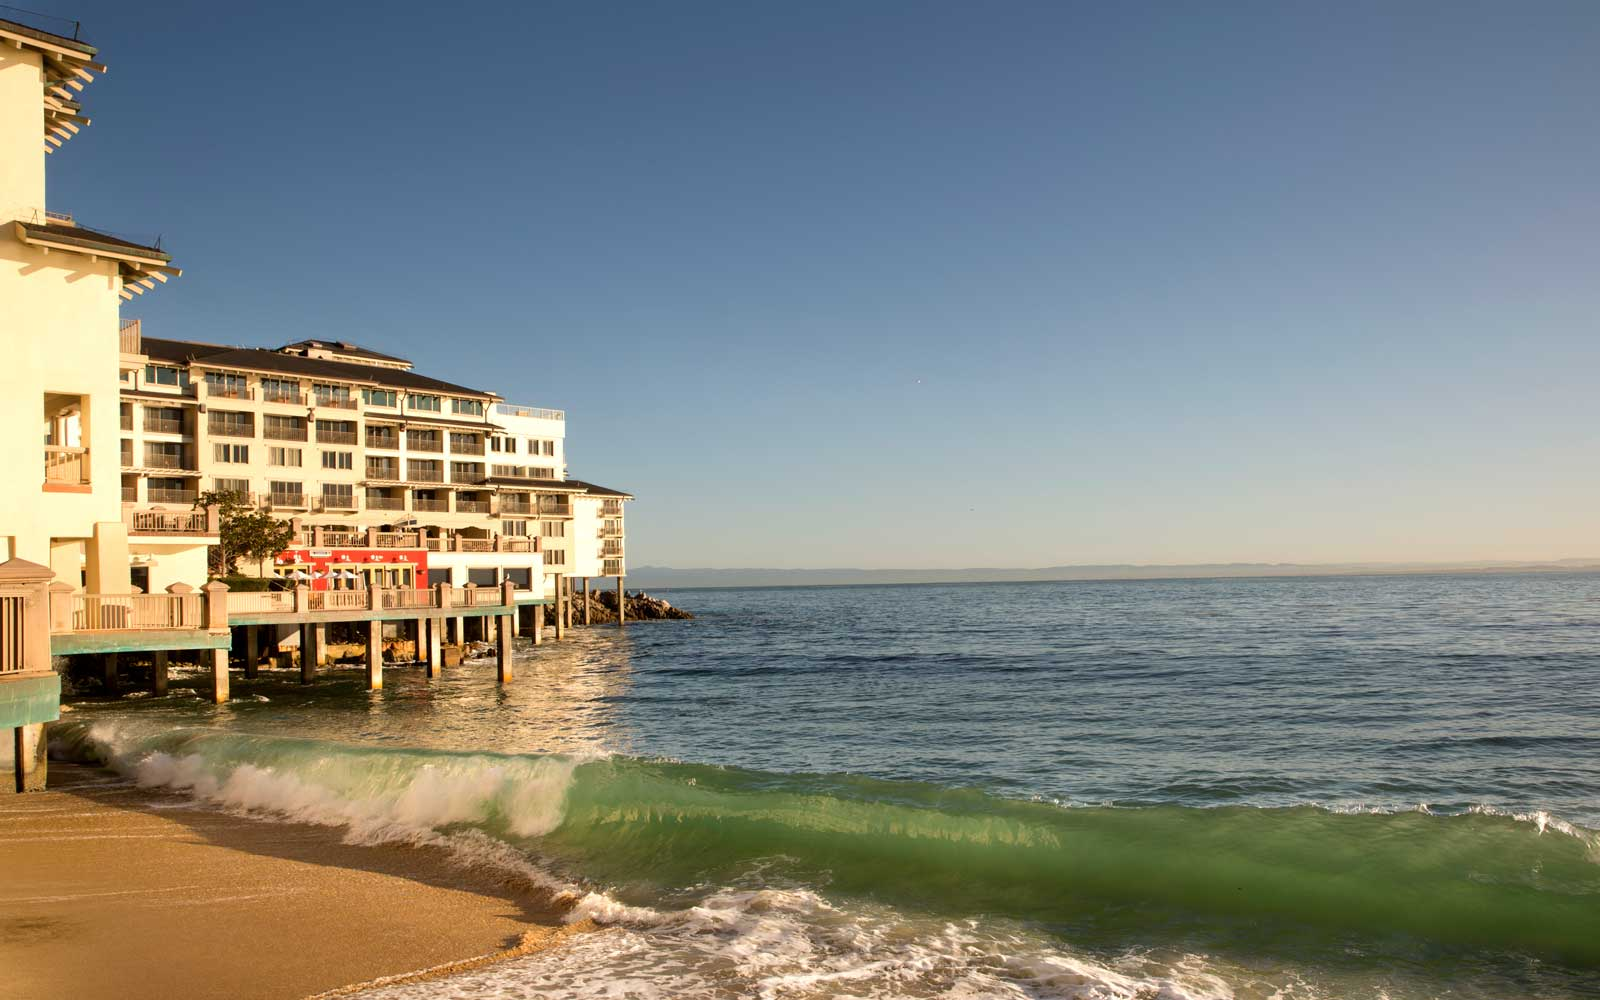 Experience Monterey Bay at This Historic Hotel Overlooking the Surf